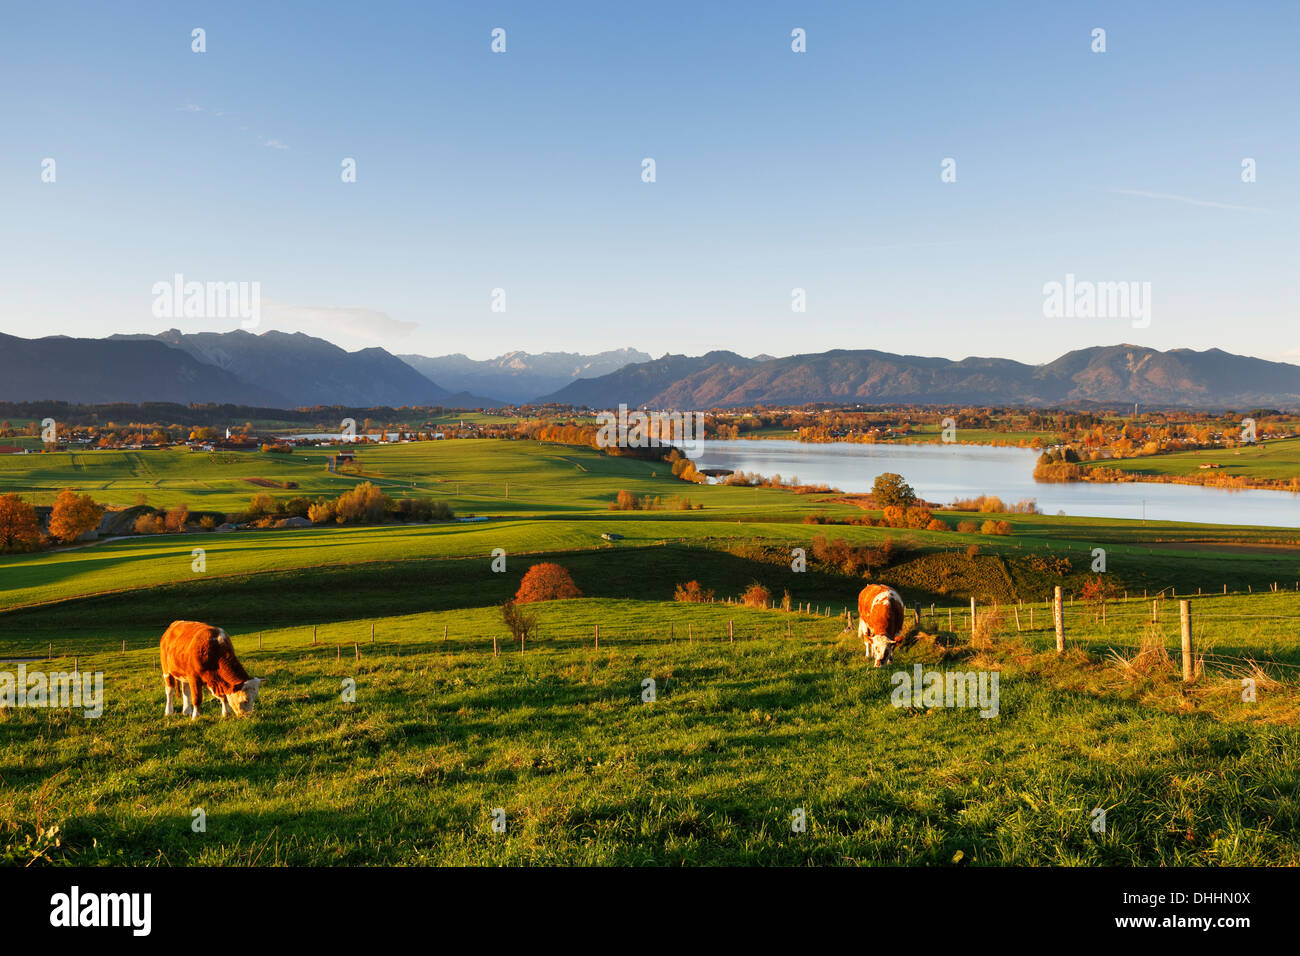 Riegsee Lake, view from Mt Aidlinger Hoehe, foothills of the Alps, Aidling, Riegsee, Pfaffenwinkel region, Upper Bavaria - Stock Image